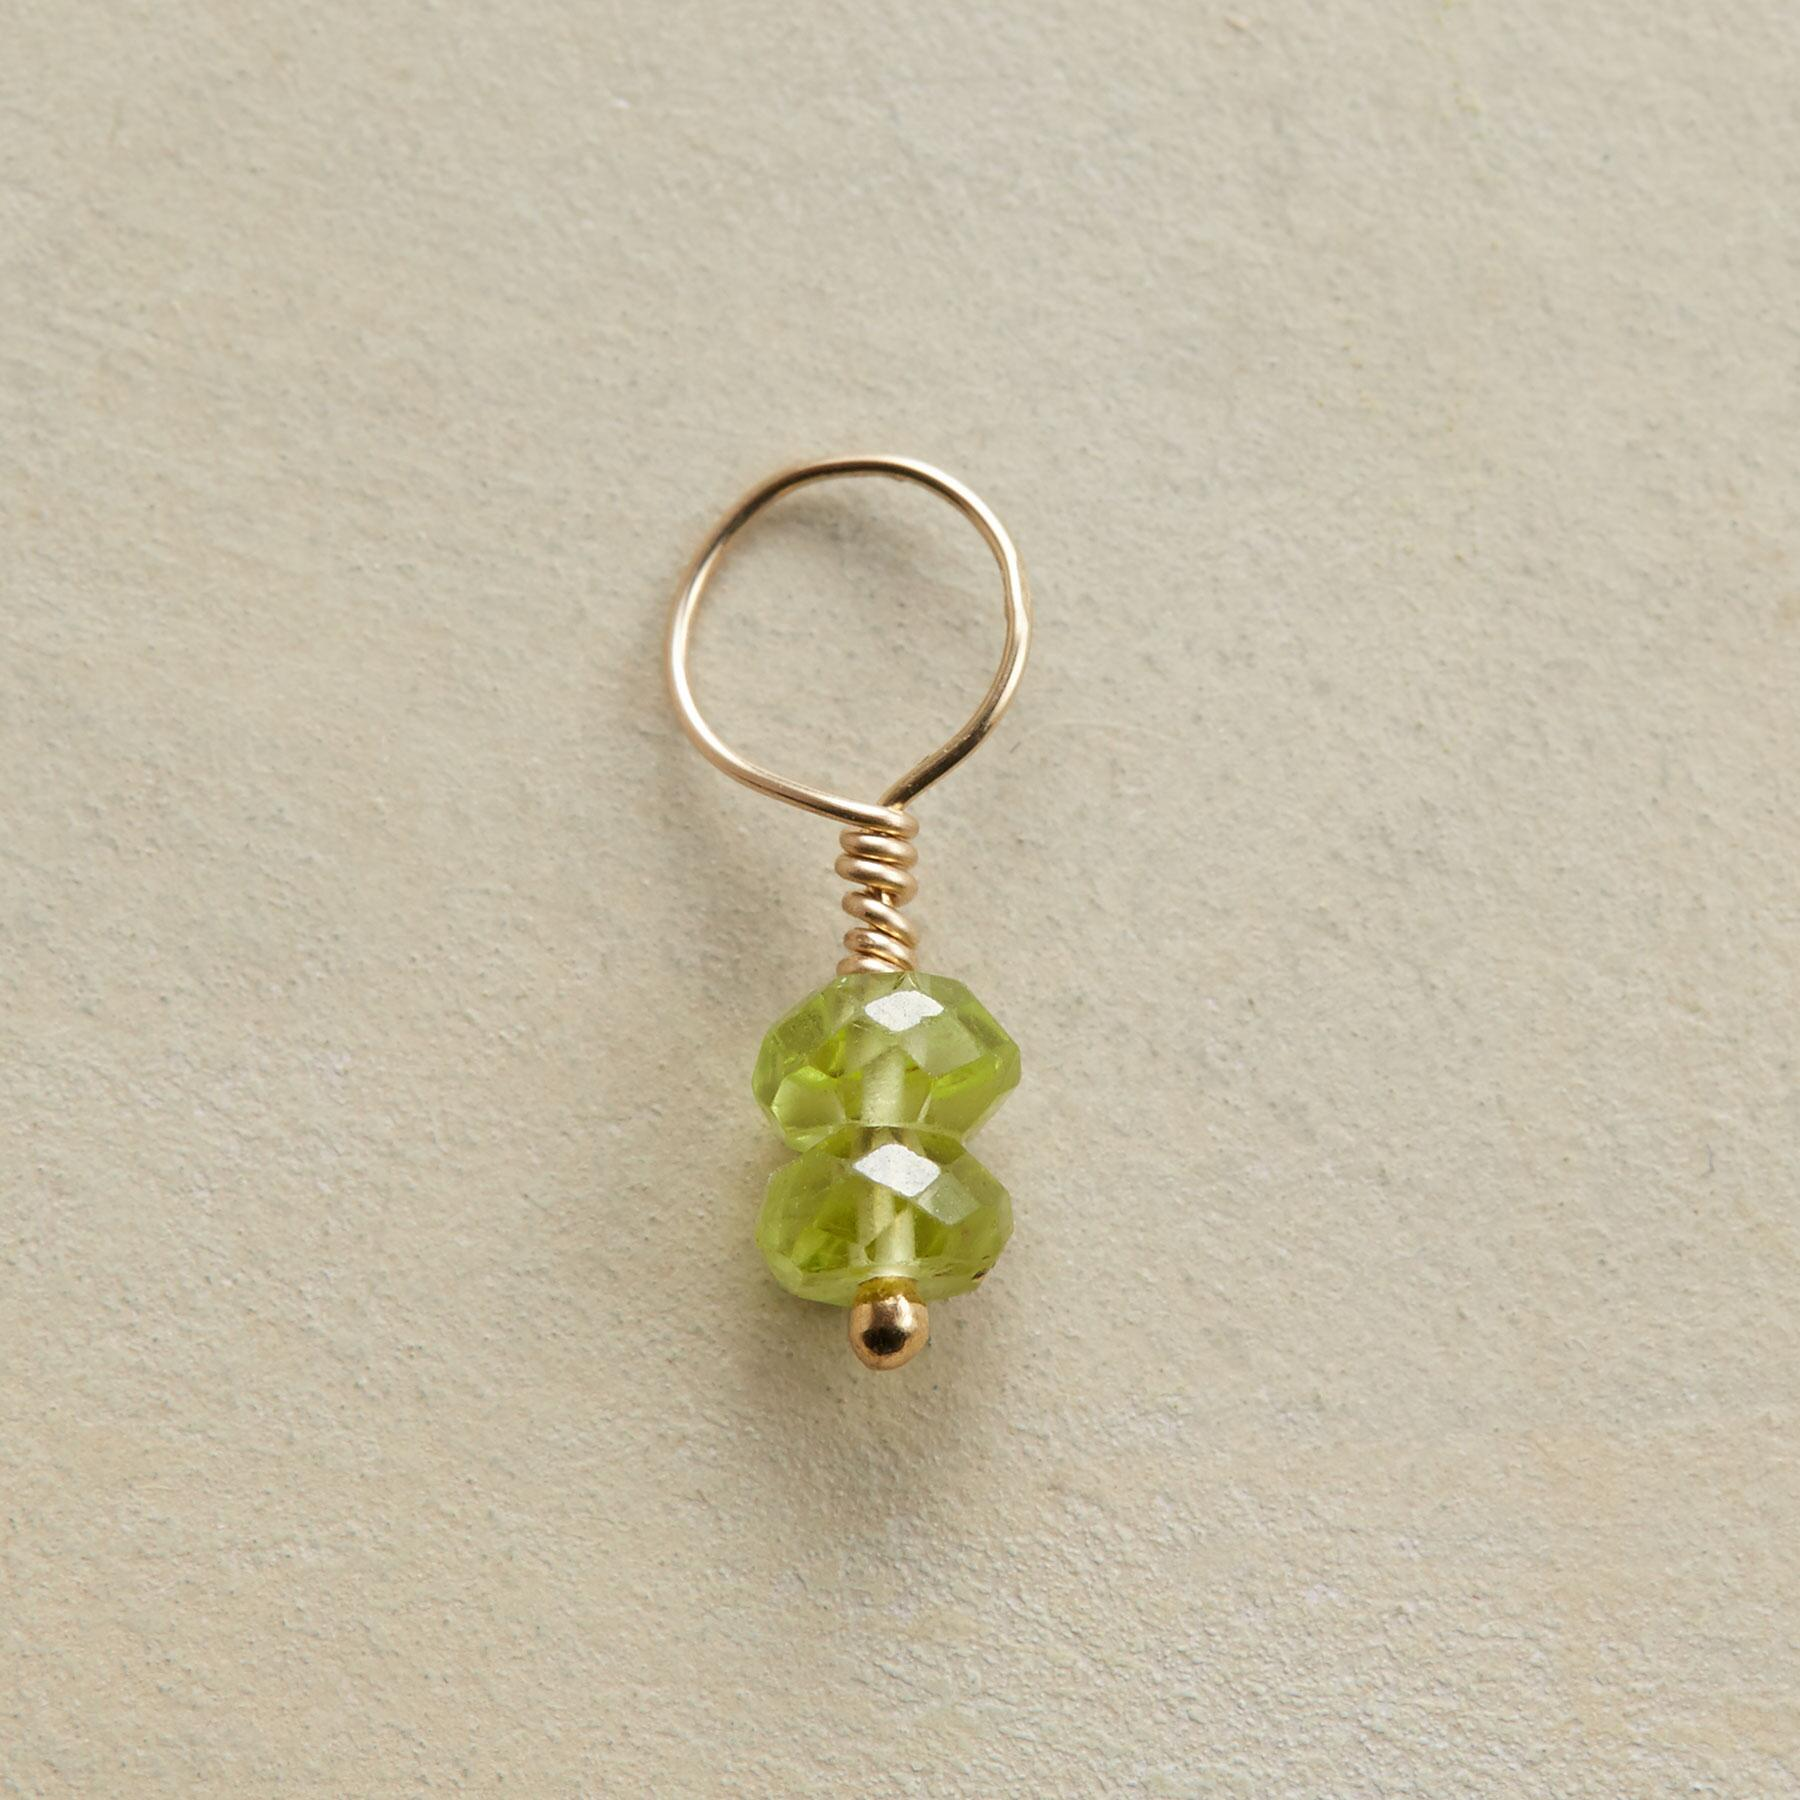 GOLD GEMSTONE BIRTHSTONE CHARM: View 1